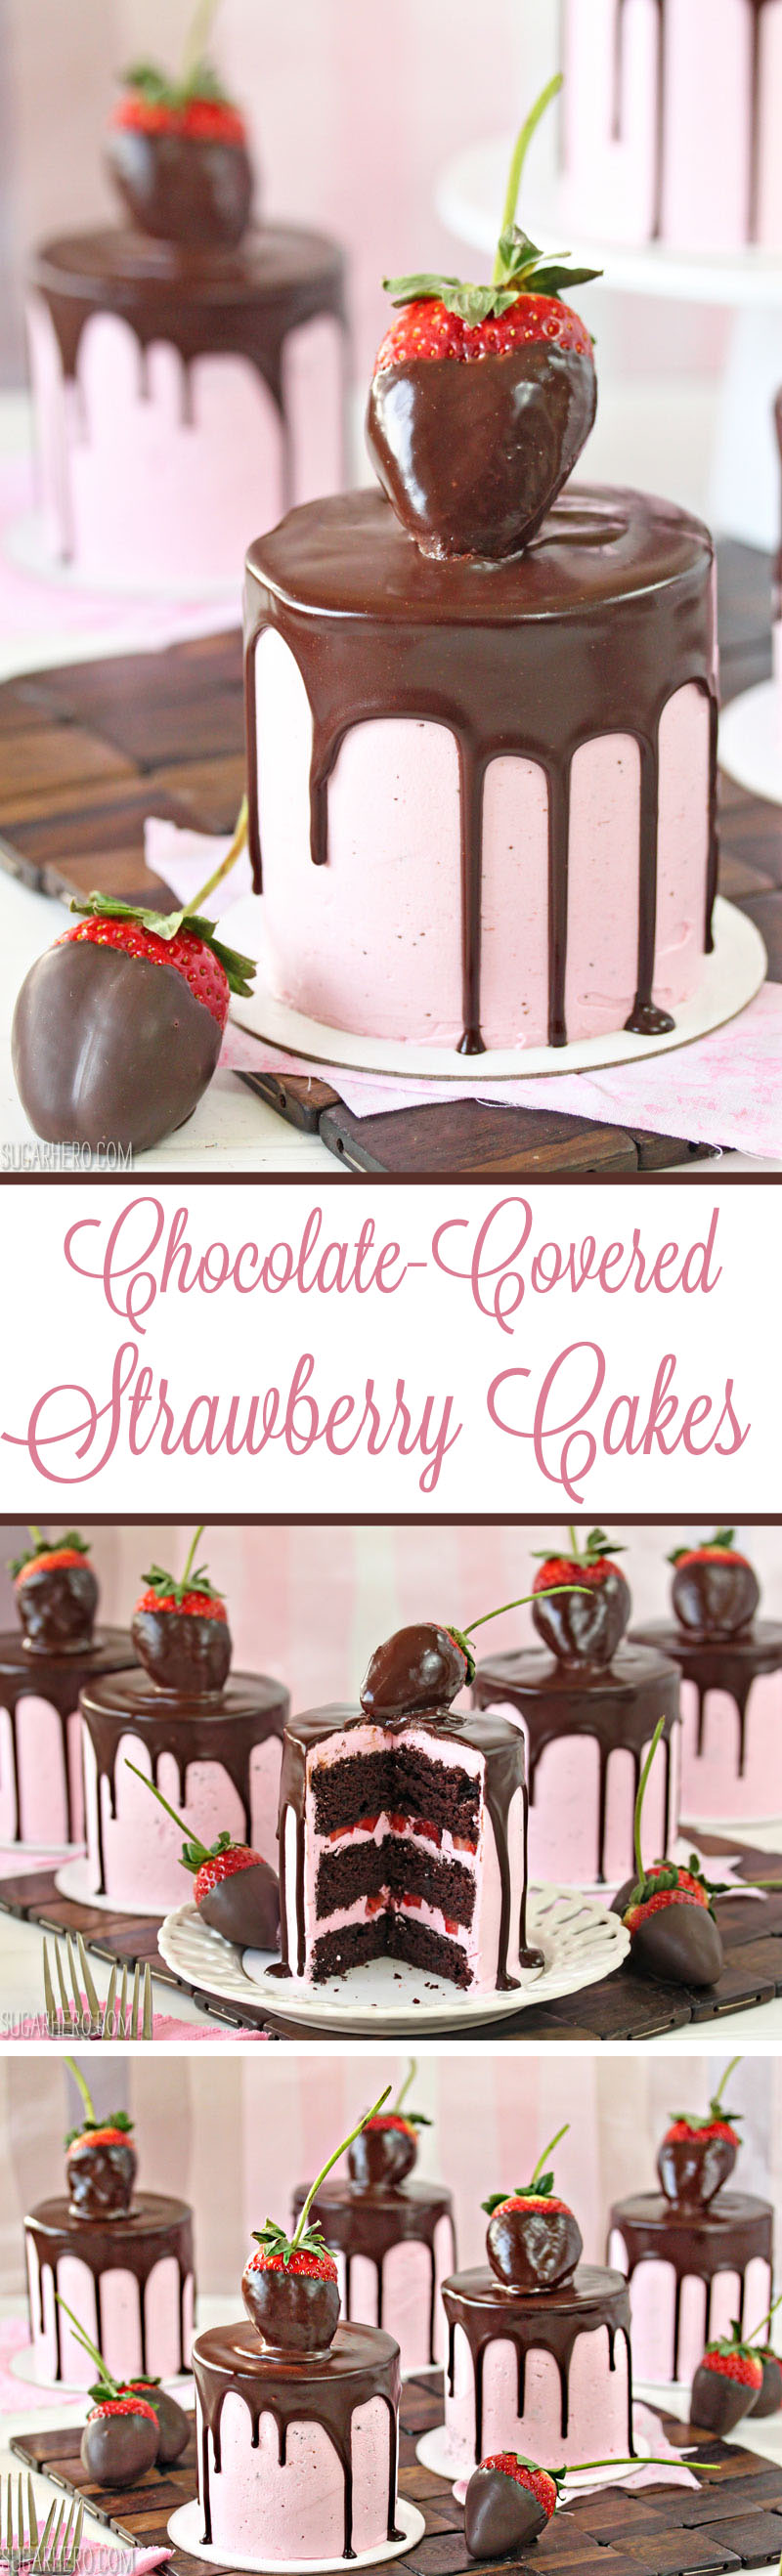 Chocolate-Covered Strawberry Cakes - sweet mini chocolate cakes with fresh strawberry buttercream. Beautiful and romantic! | From SugarHero.com